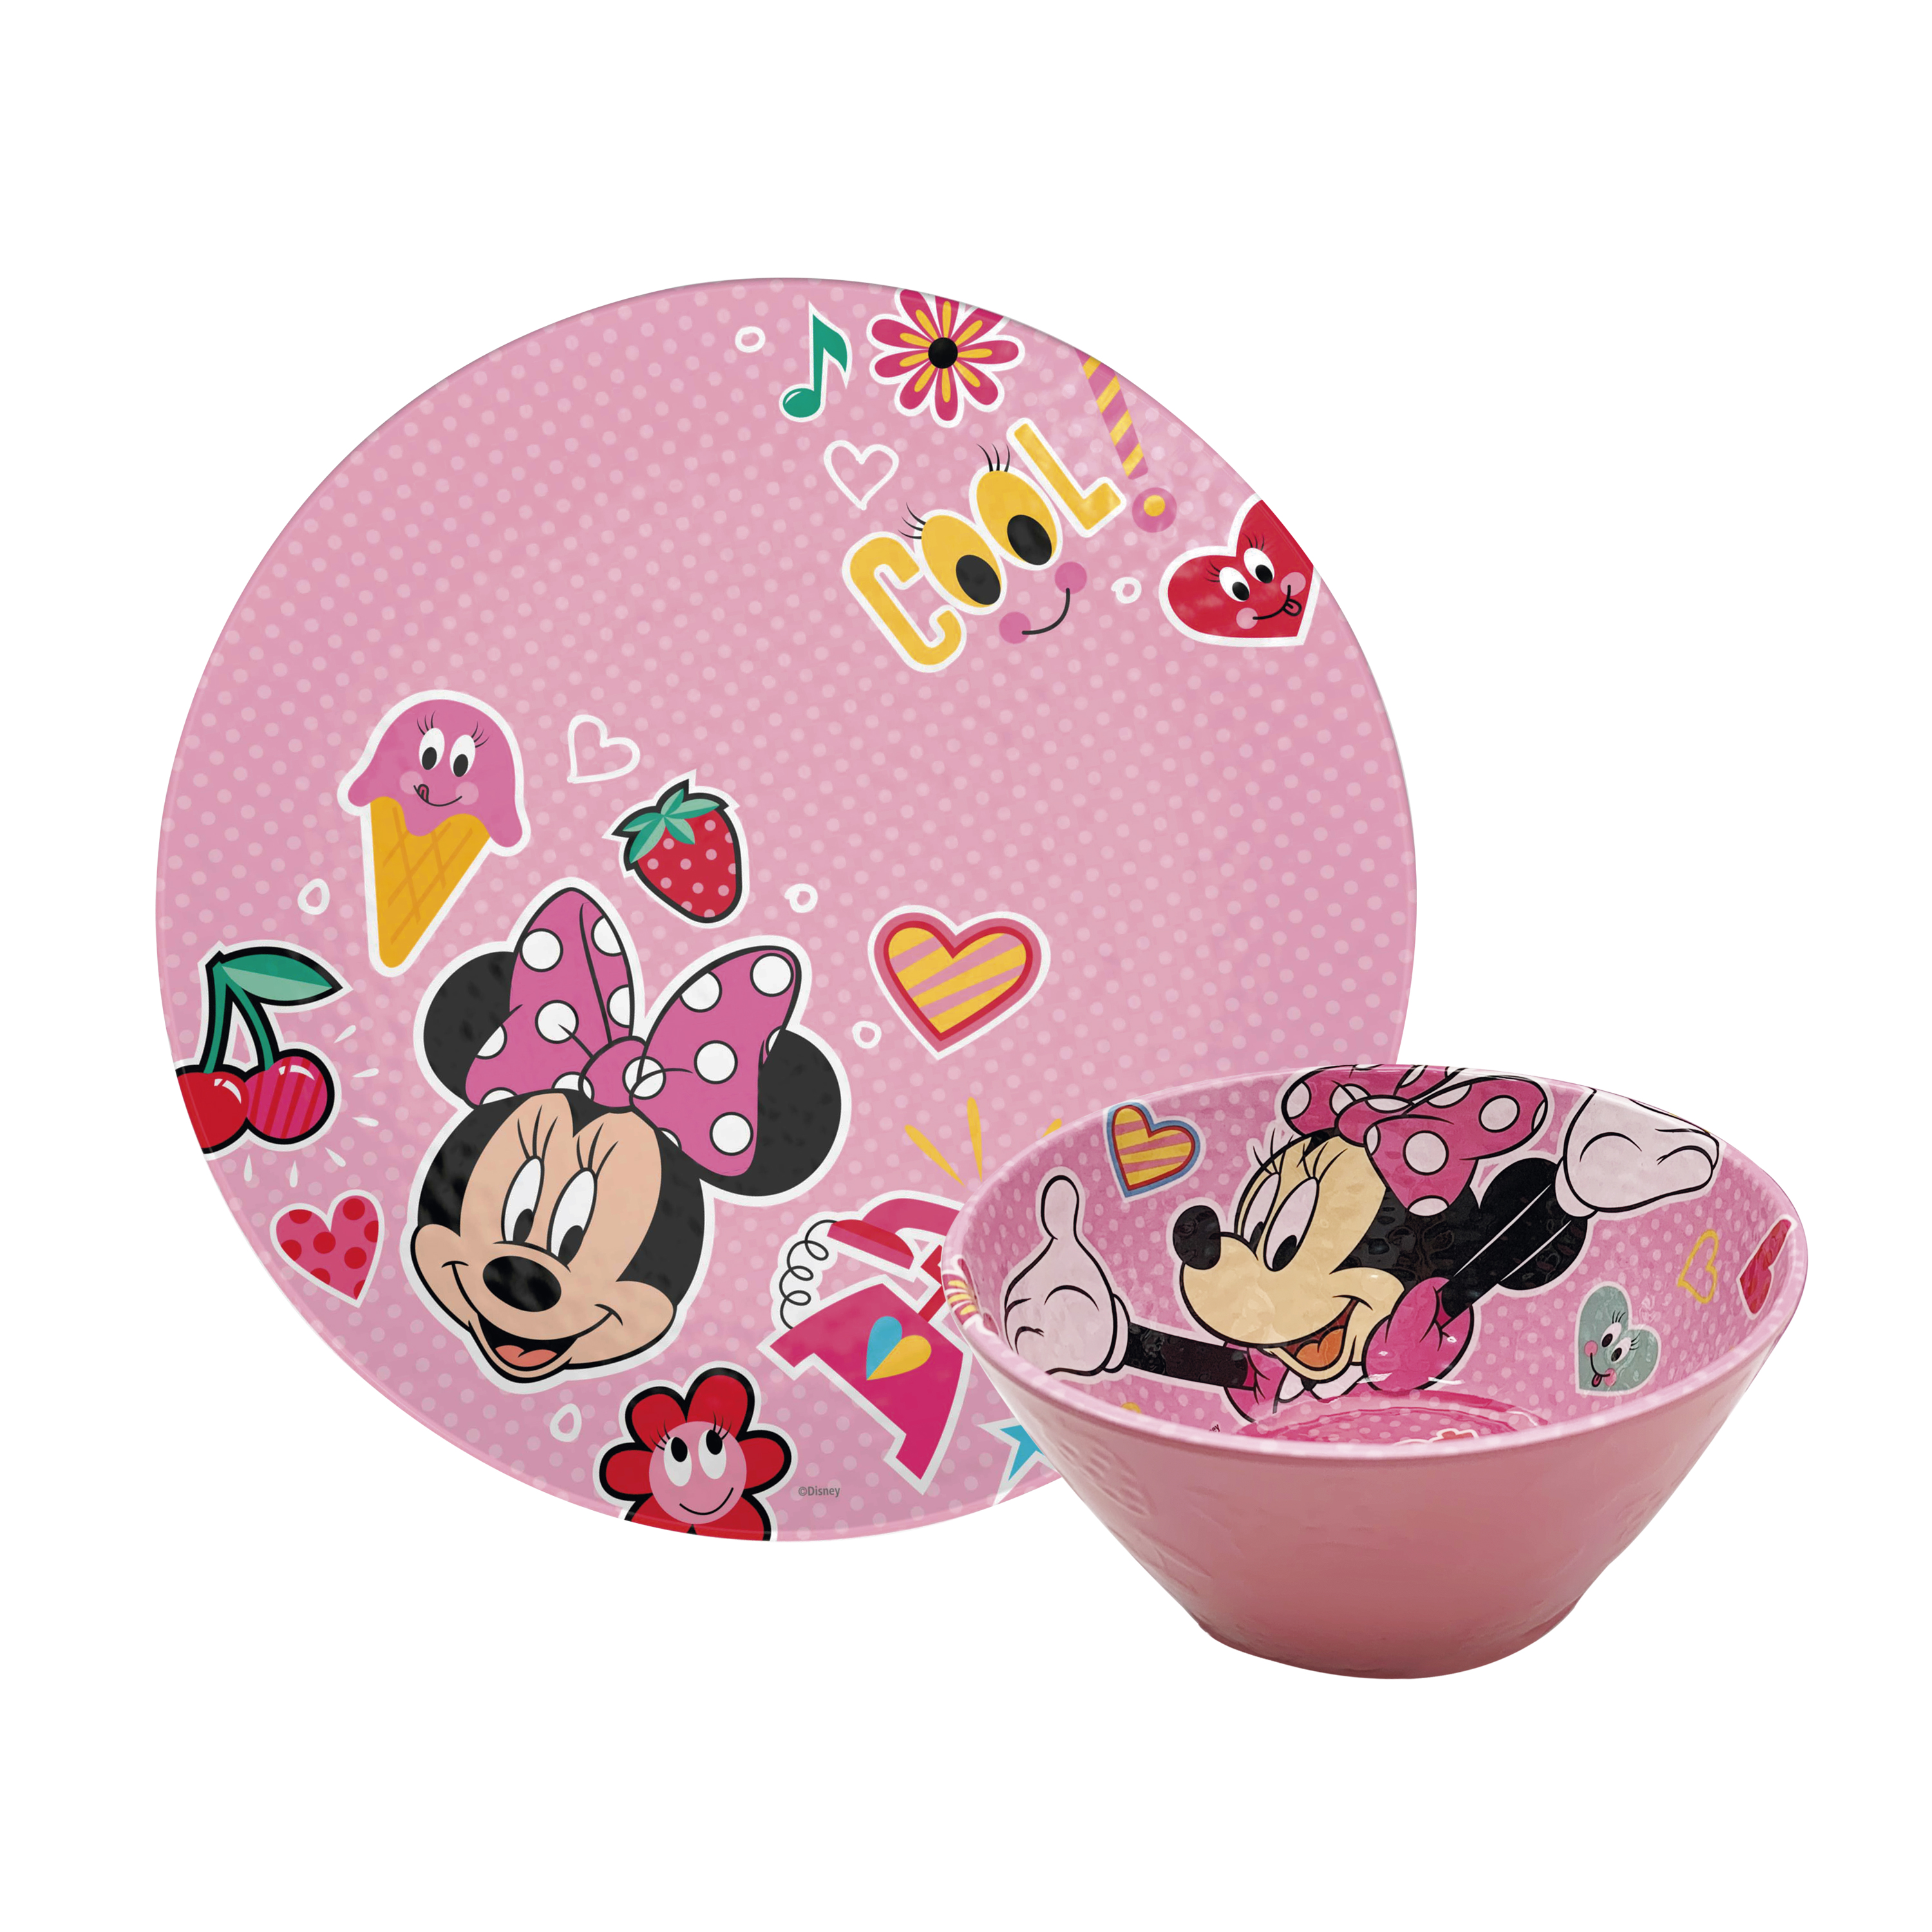 Disney Kids 9-inch Plate and 6-inch Bowl Set, Minnie Mouse, 2-piece set slideshow image 1